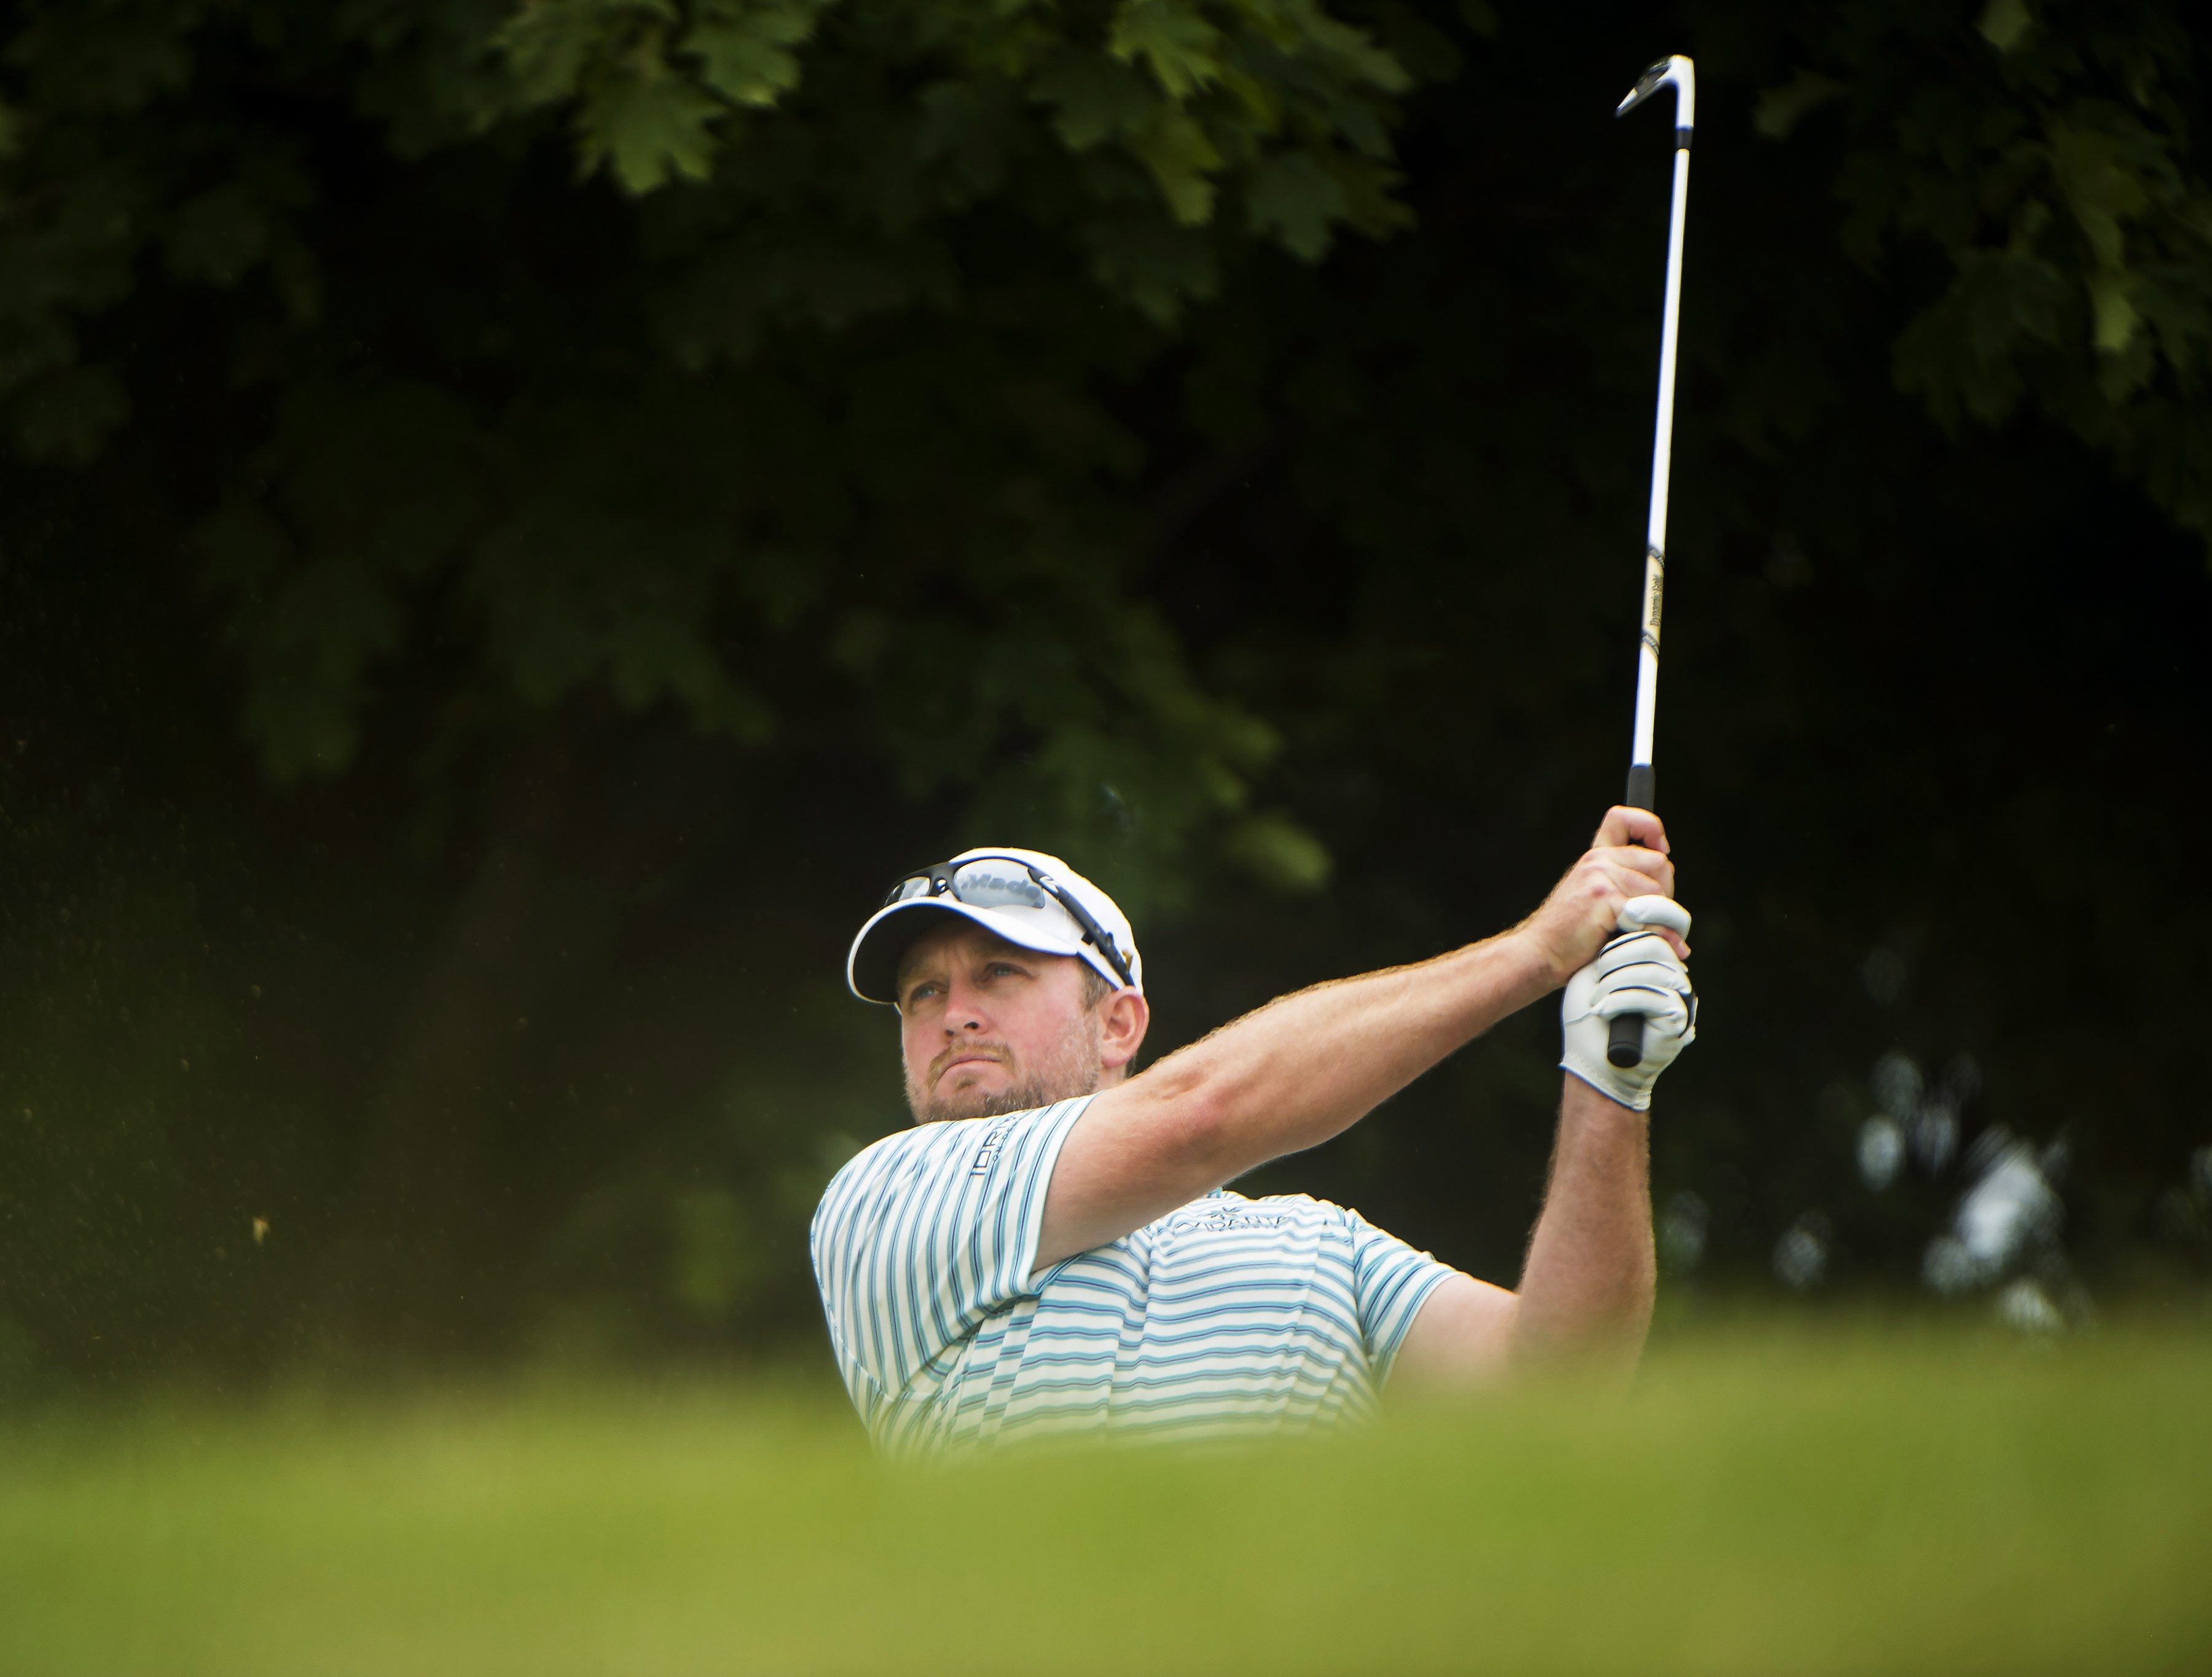 Steve Wheatcroft watches his tee shot on the seventh hole during the final round of the Canadian Open golf tournament, Sunday, July 24, 2016, in Oakville, Ontario. (Nathan Denette/The Canadian Press via AP)